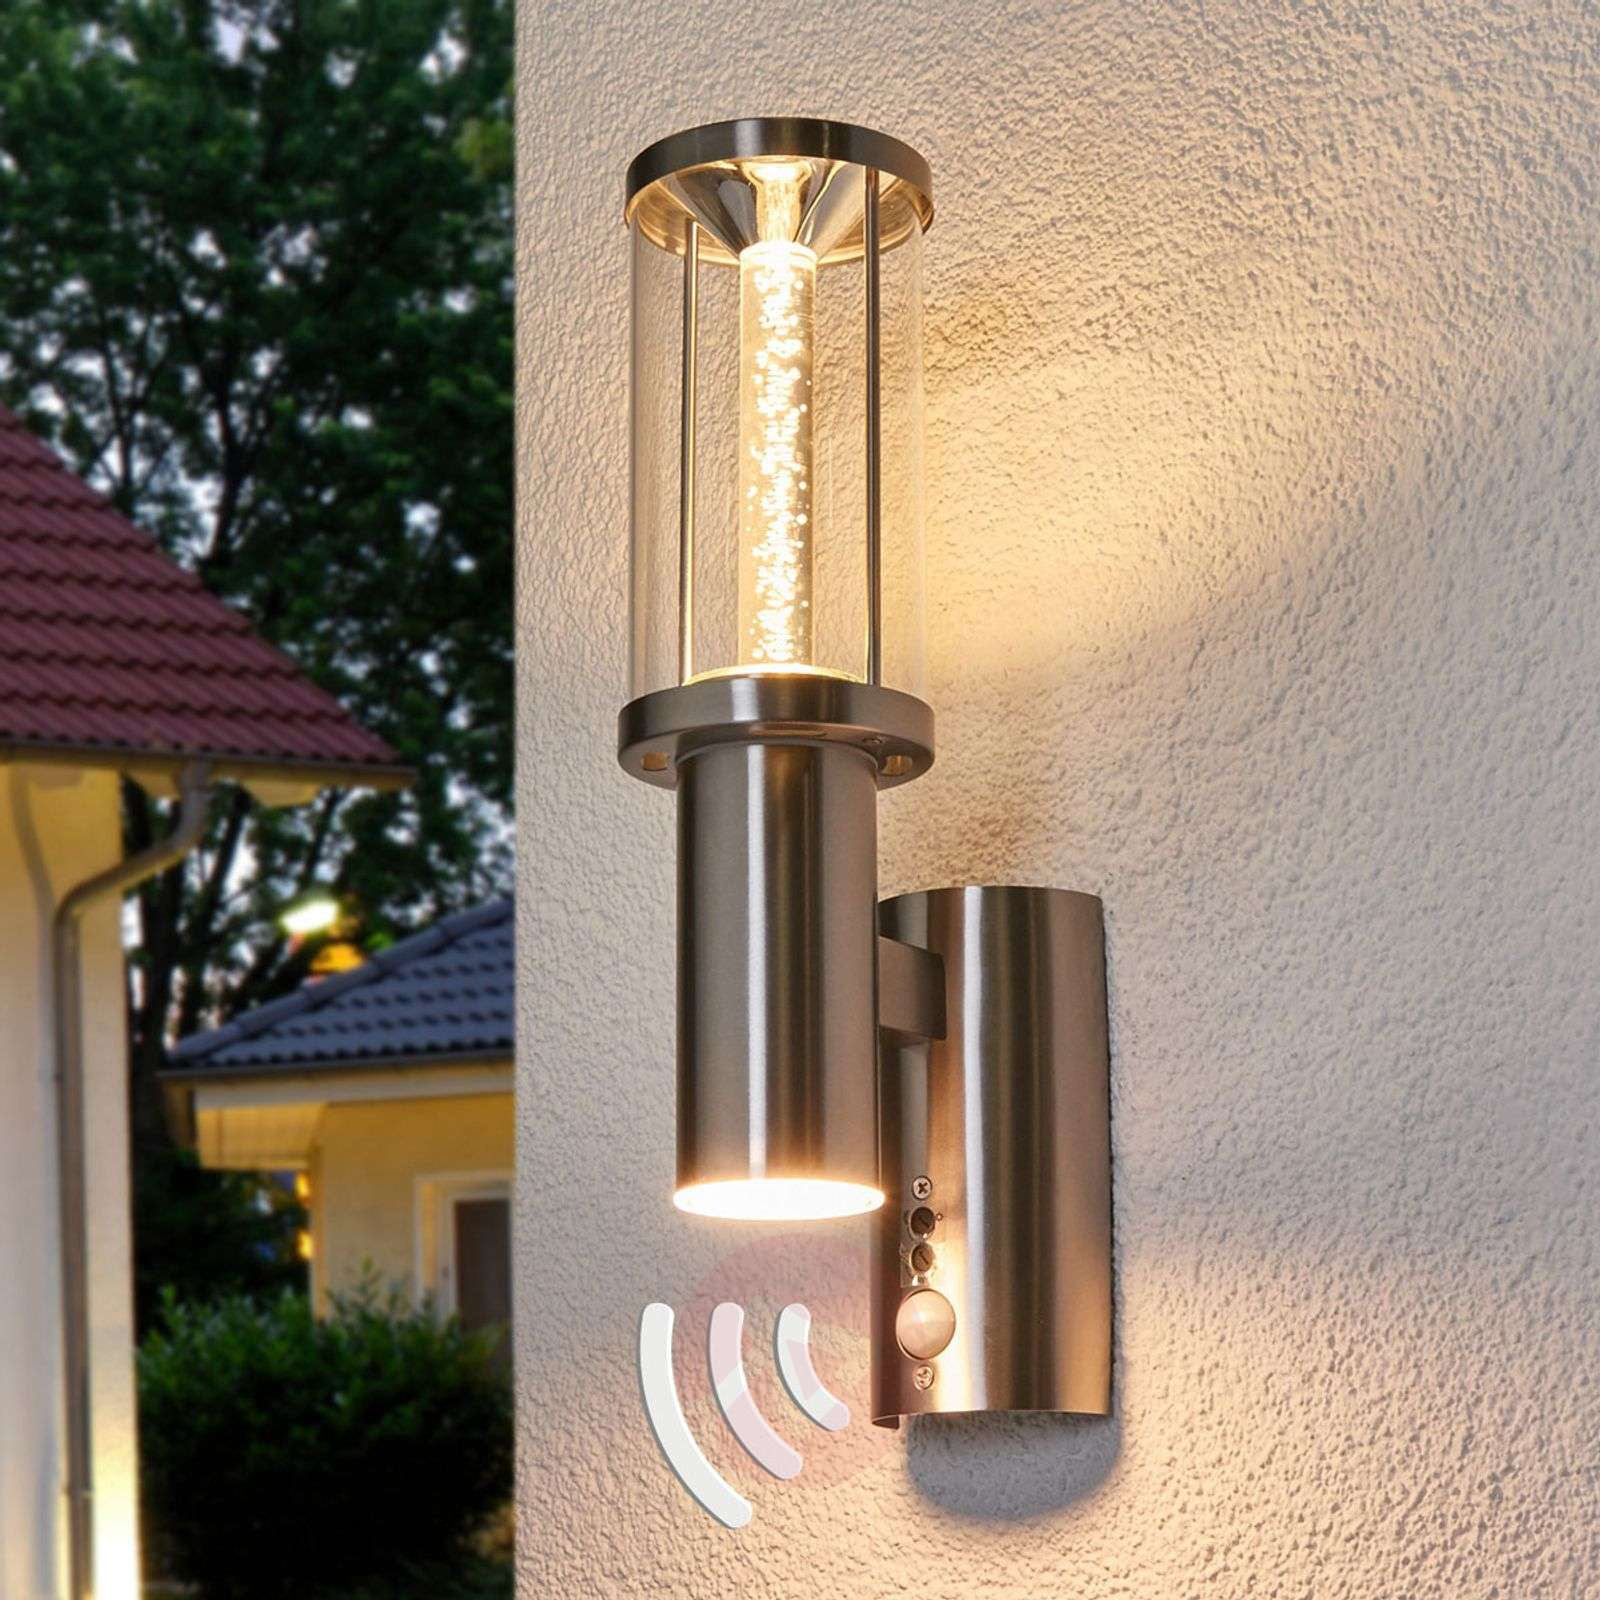 Decorative LED outdoor light Trono Stick with PIR-3000529-01